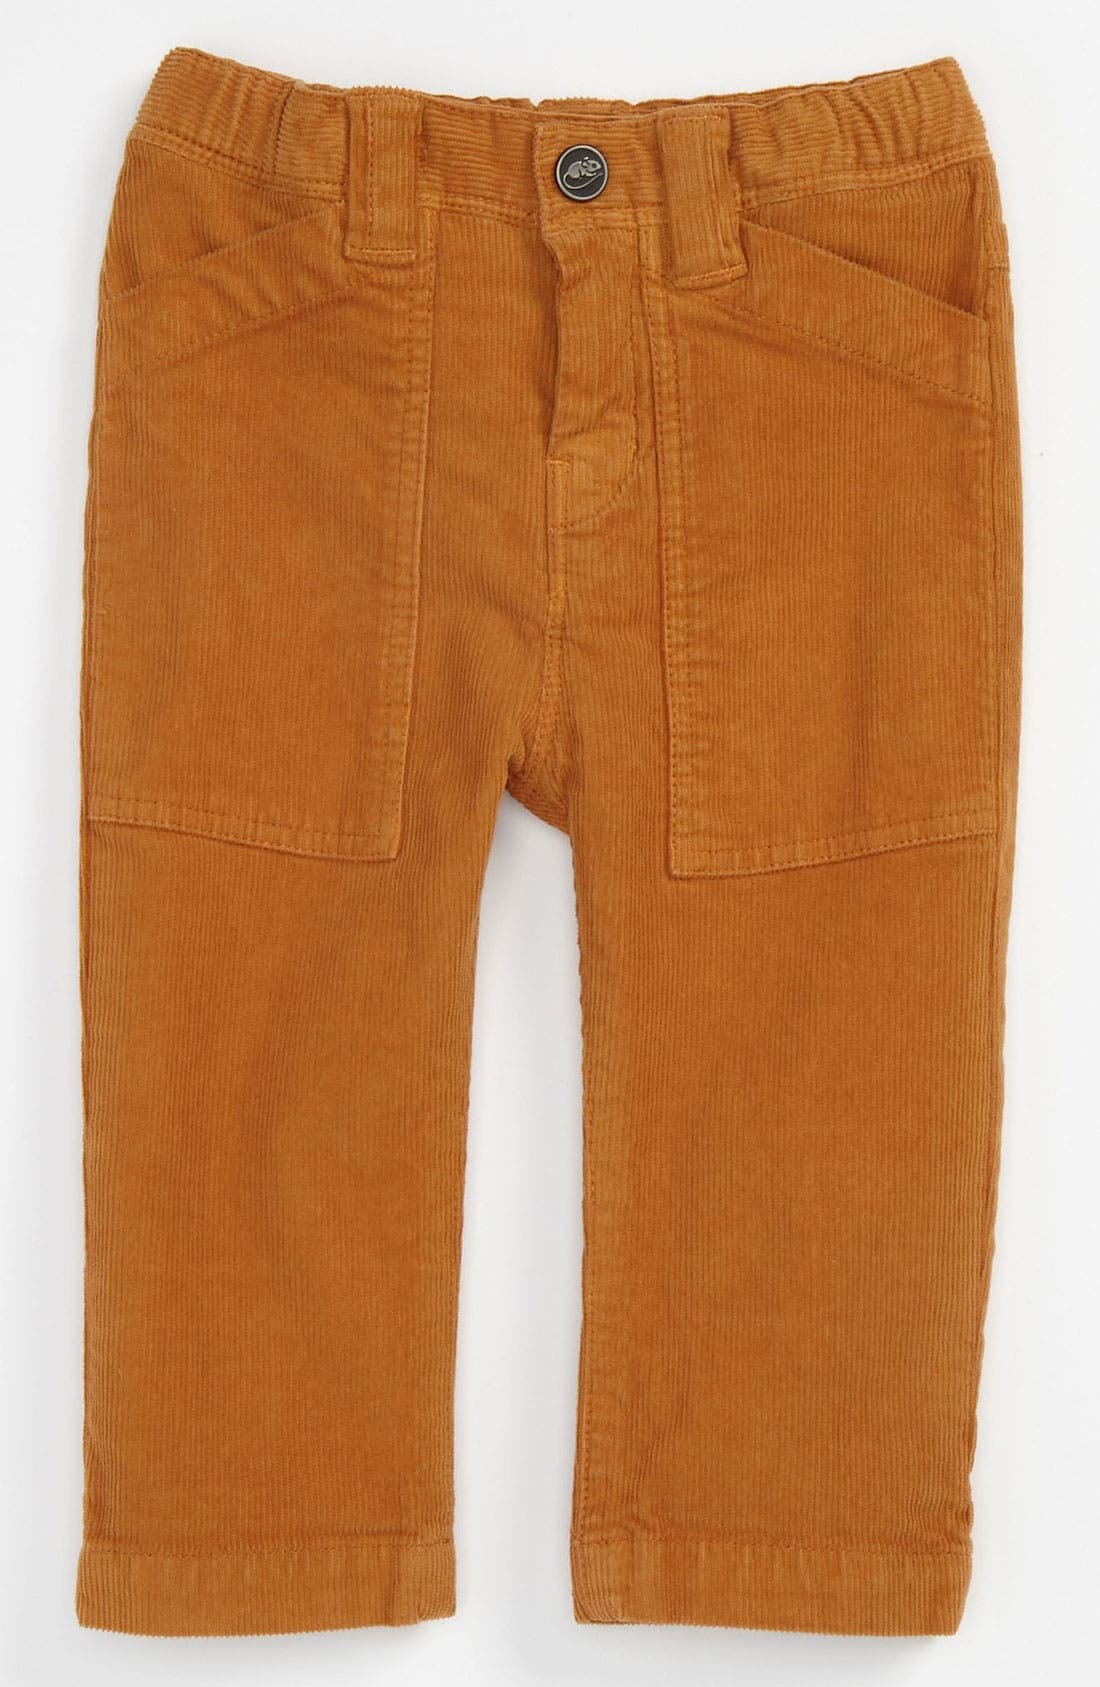 Main Image - LITTLE MARC JACOBS Stretch Corduroy Pants (Toddler)